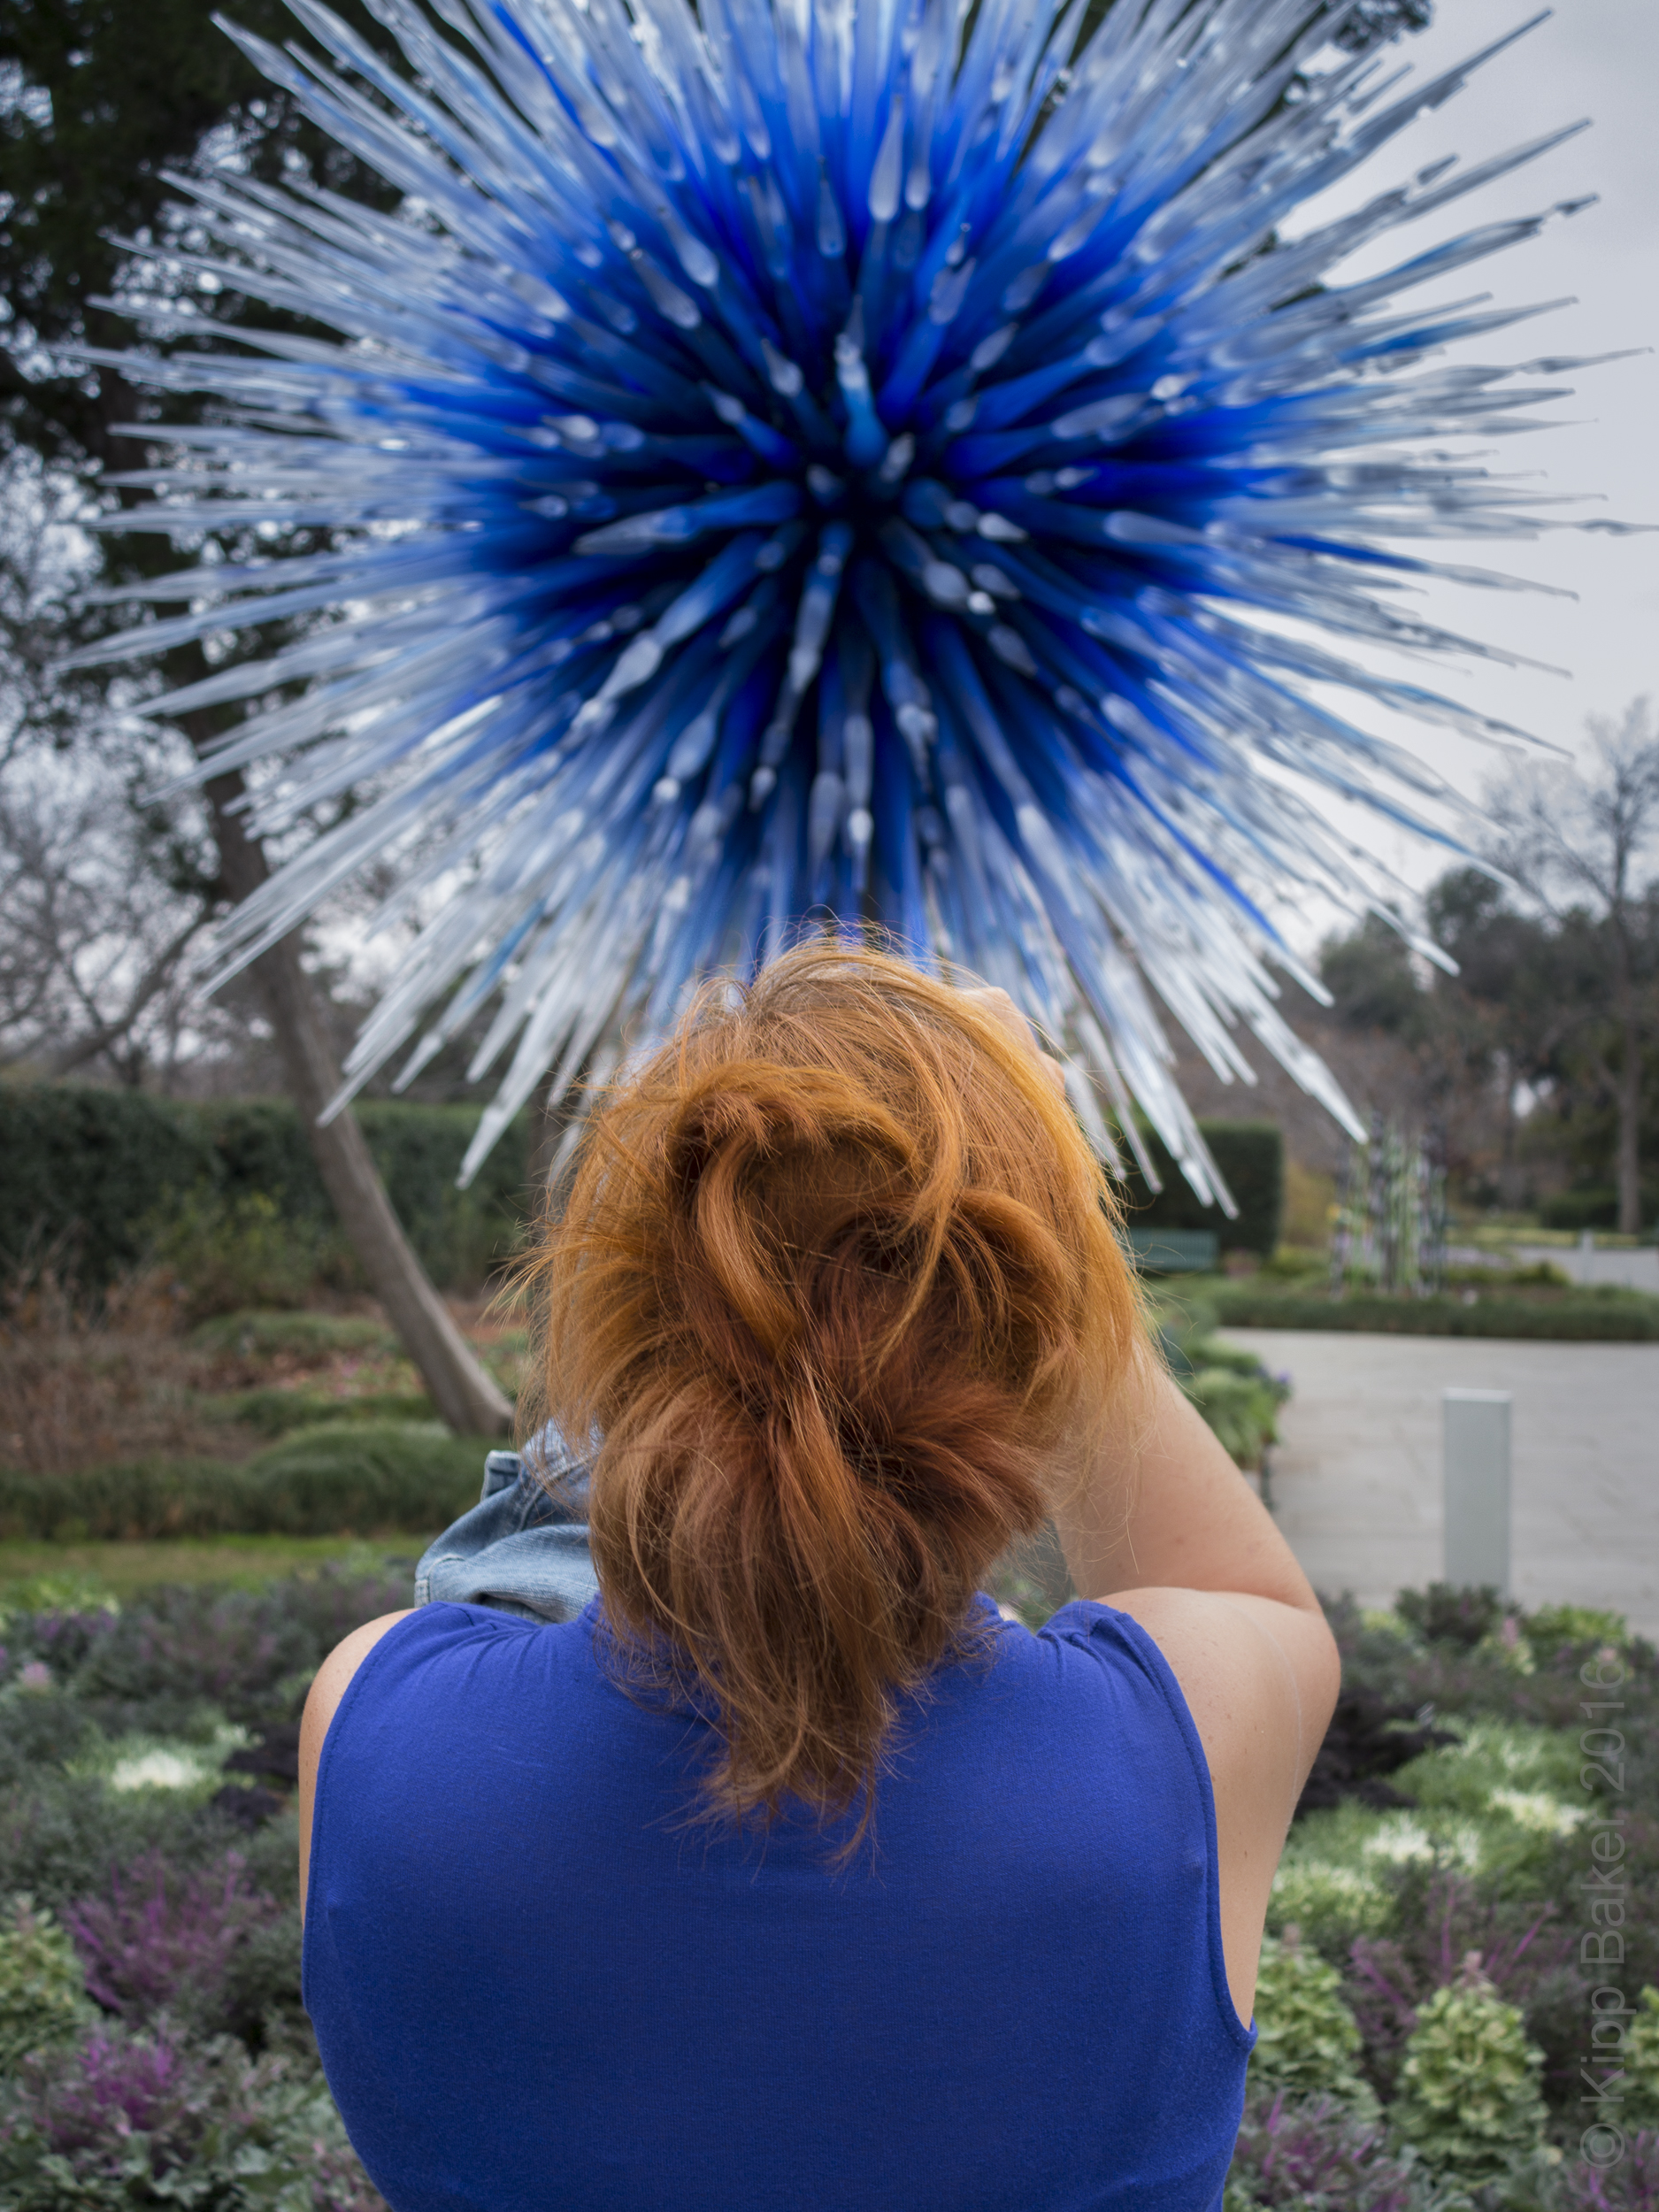 Chihuly Exhibit, Dallas, 2012